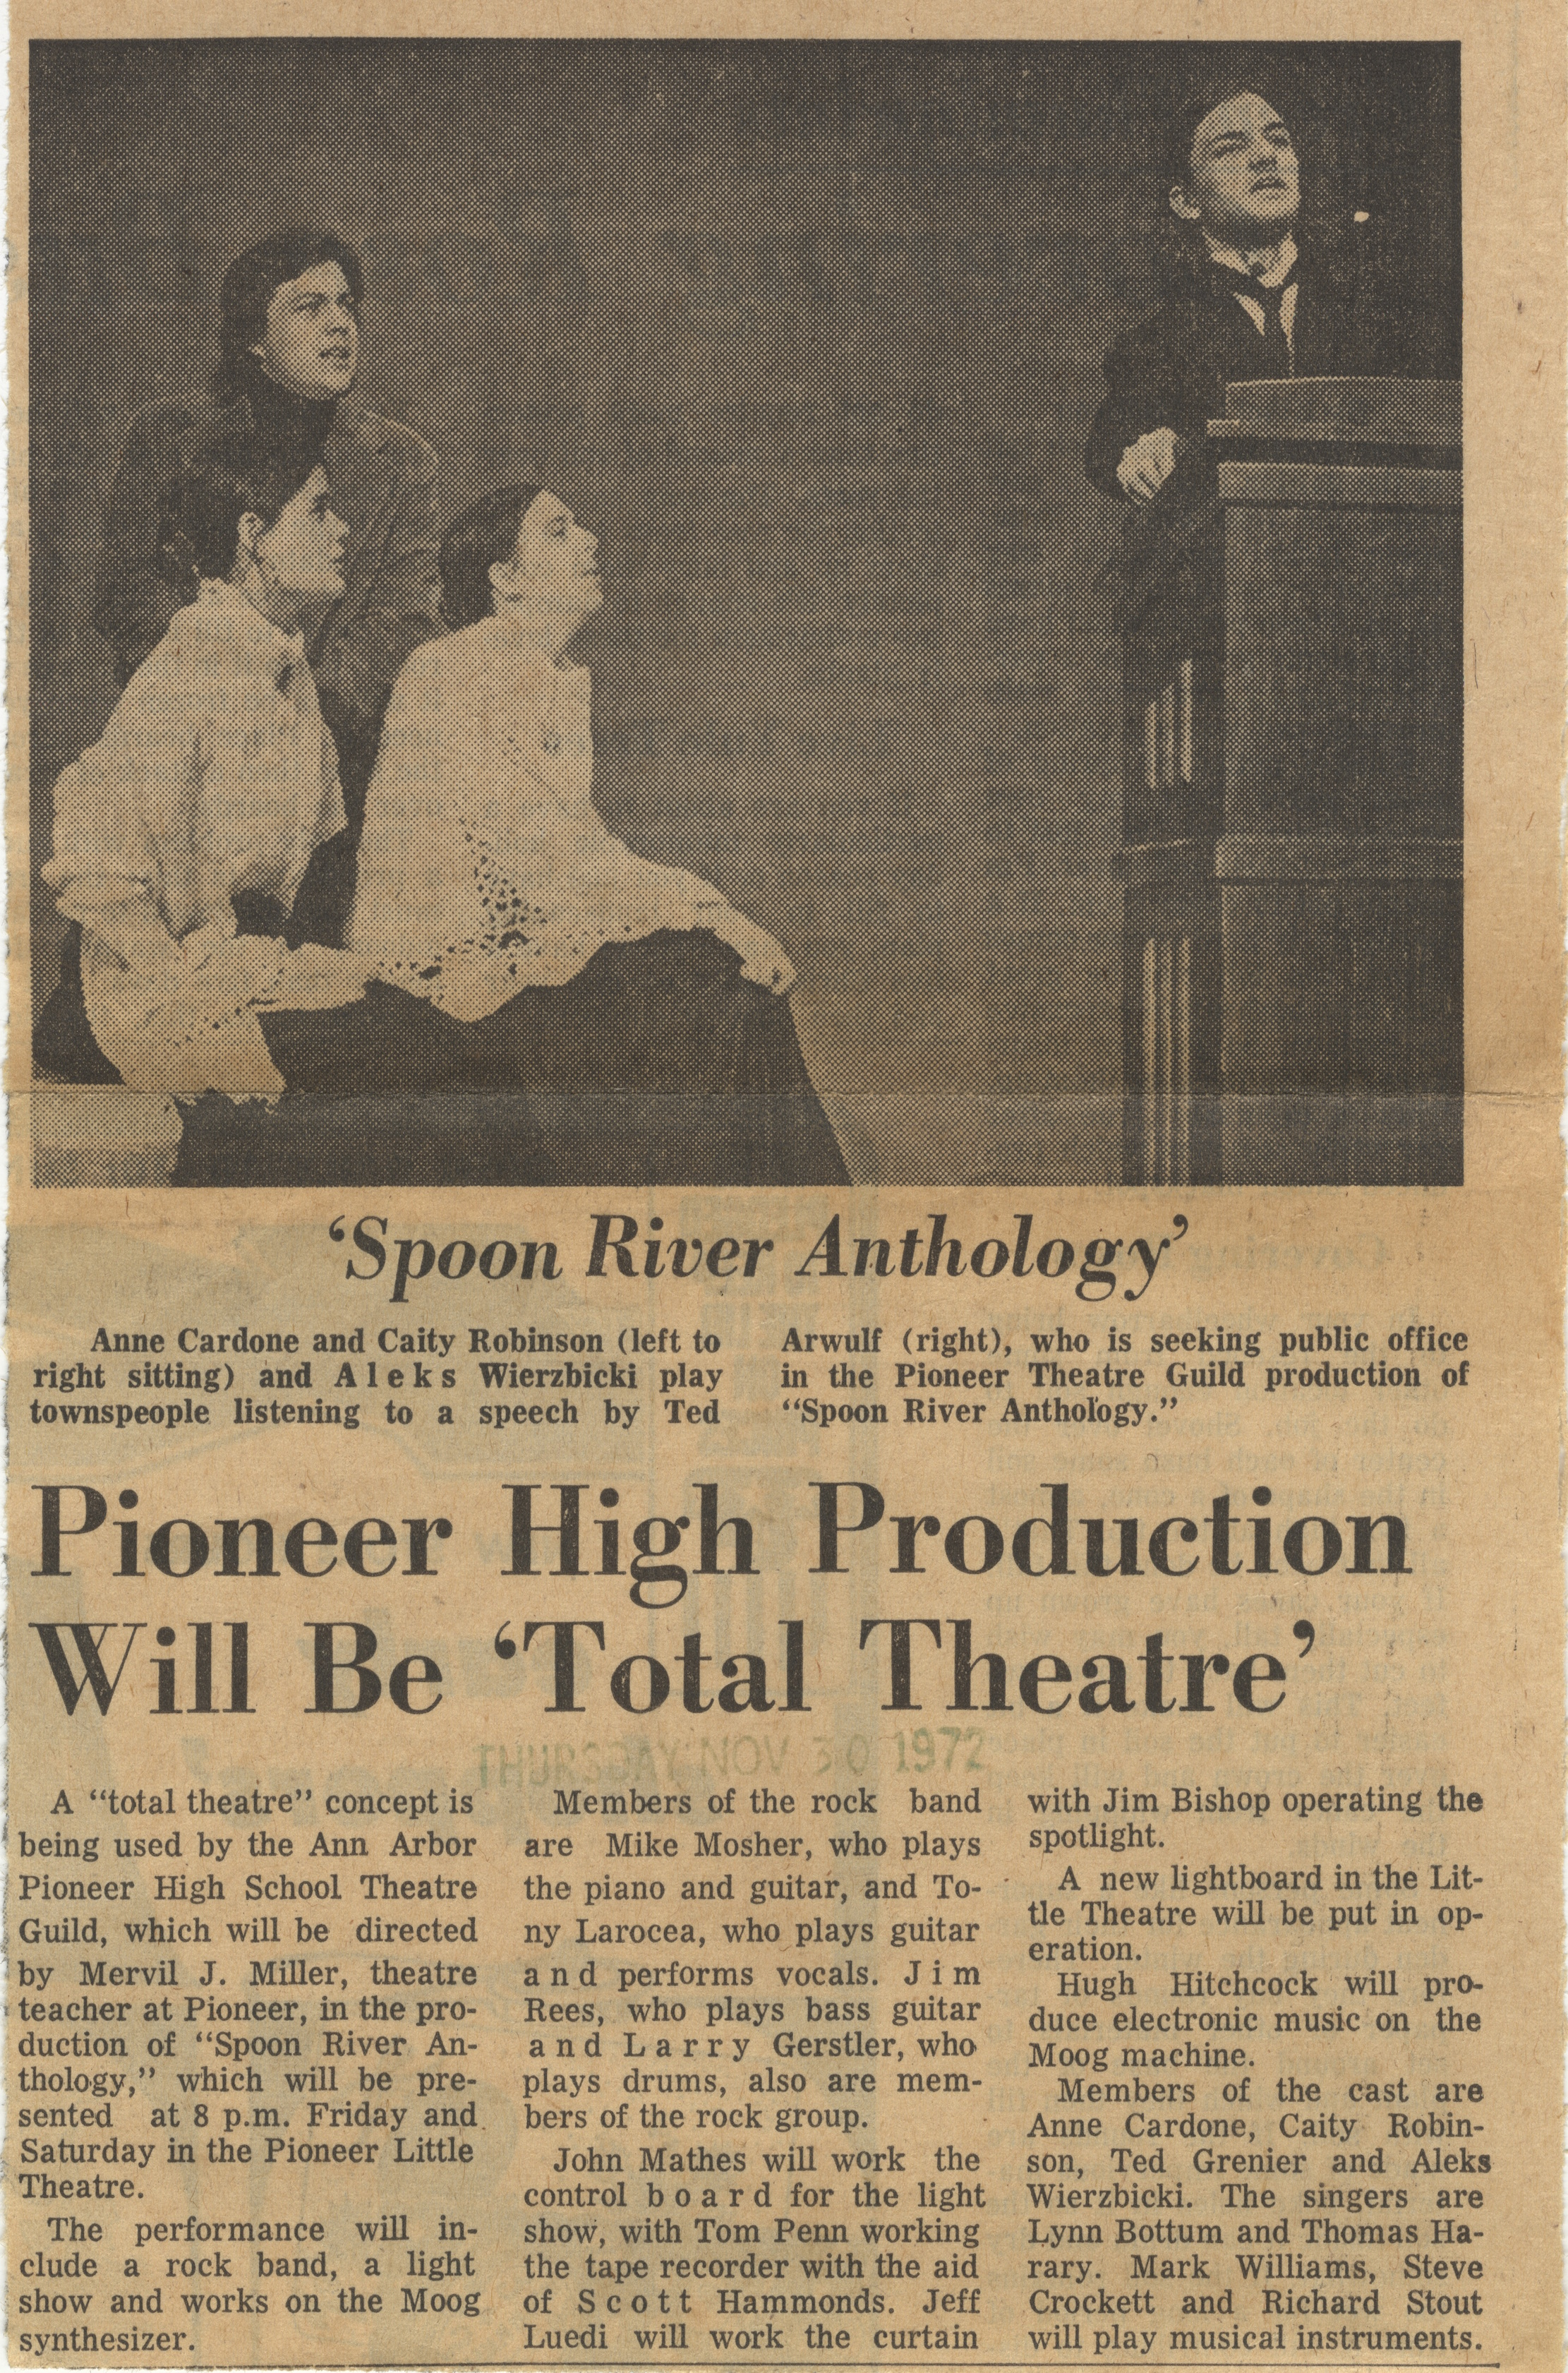 Pioneer High Production Will Be 'Total Theatre' image